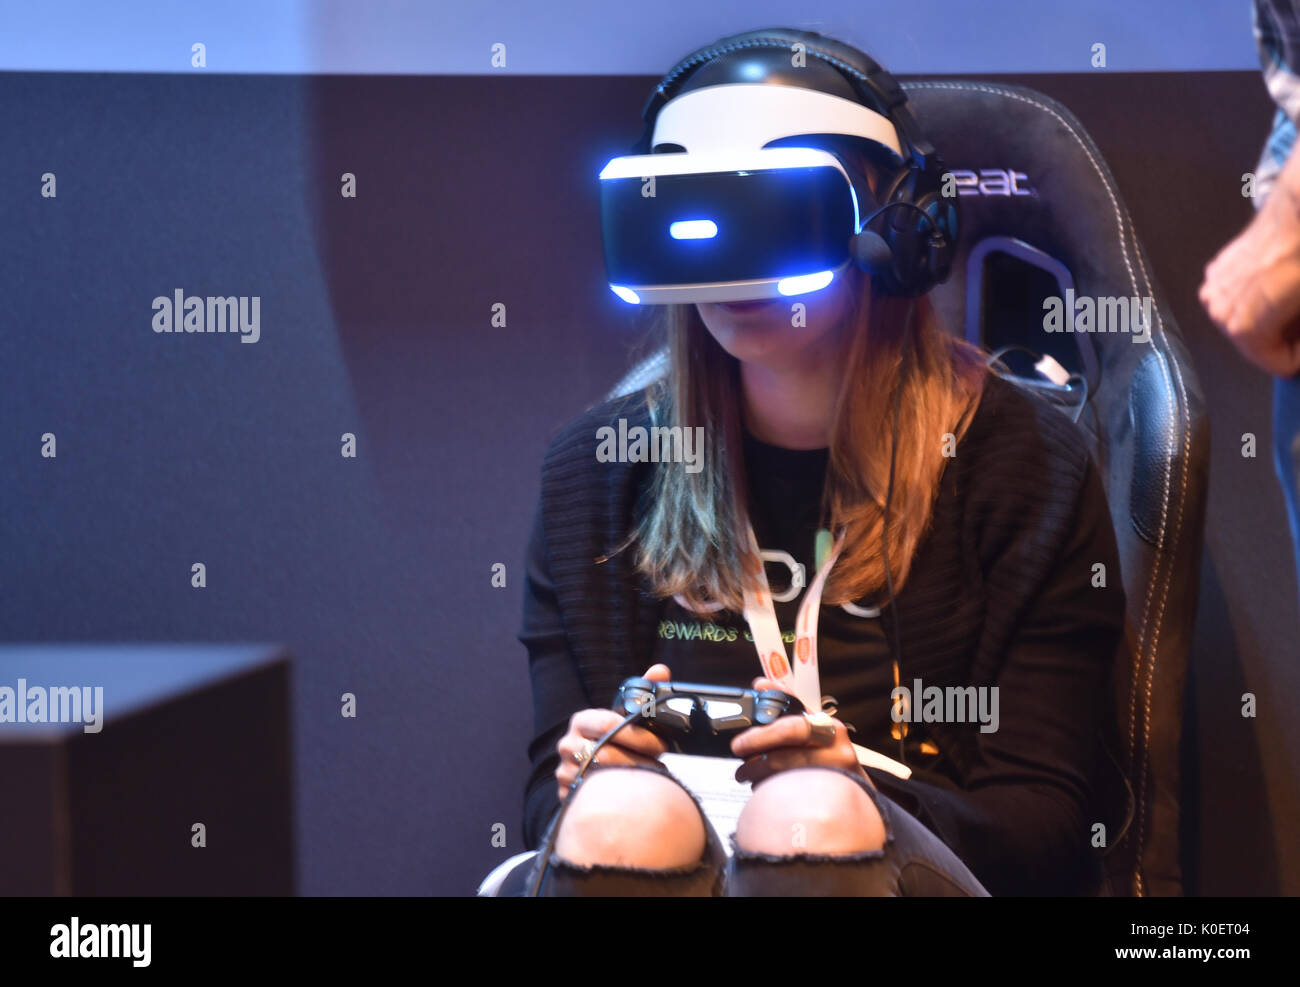 Cologne, Germany. 22nd Aug, 2017. Germany, Cologne, August 22, 2017, Gamescom: A young woman wears virtual reality glasses. Credit: Juergen Schwarz/Alamy Live News Stock Photo